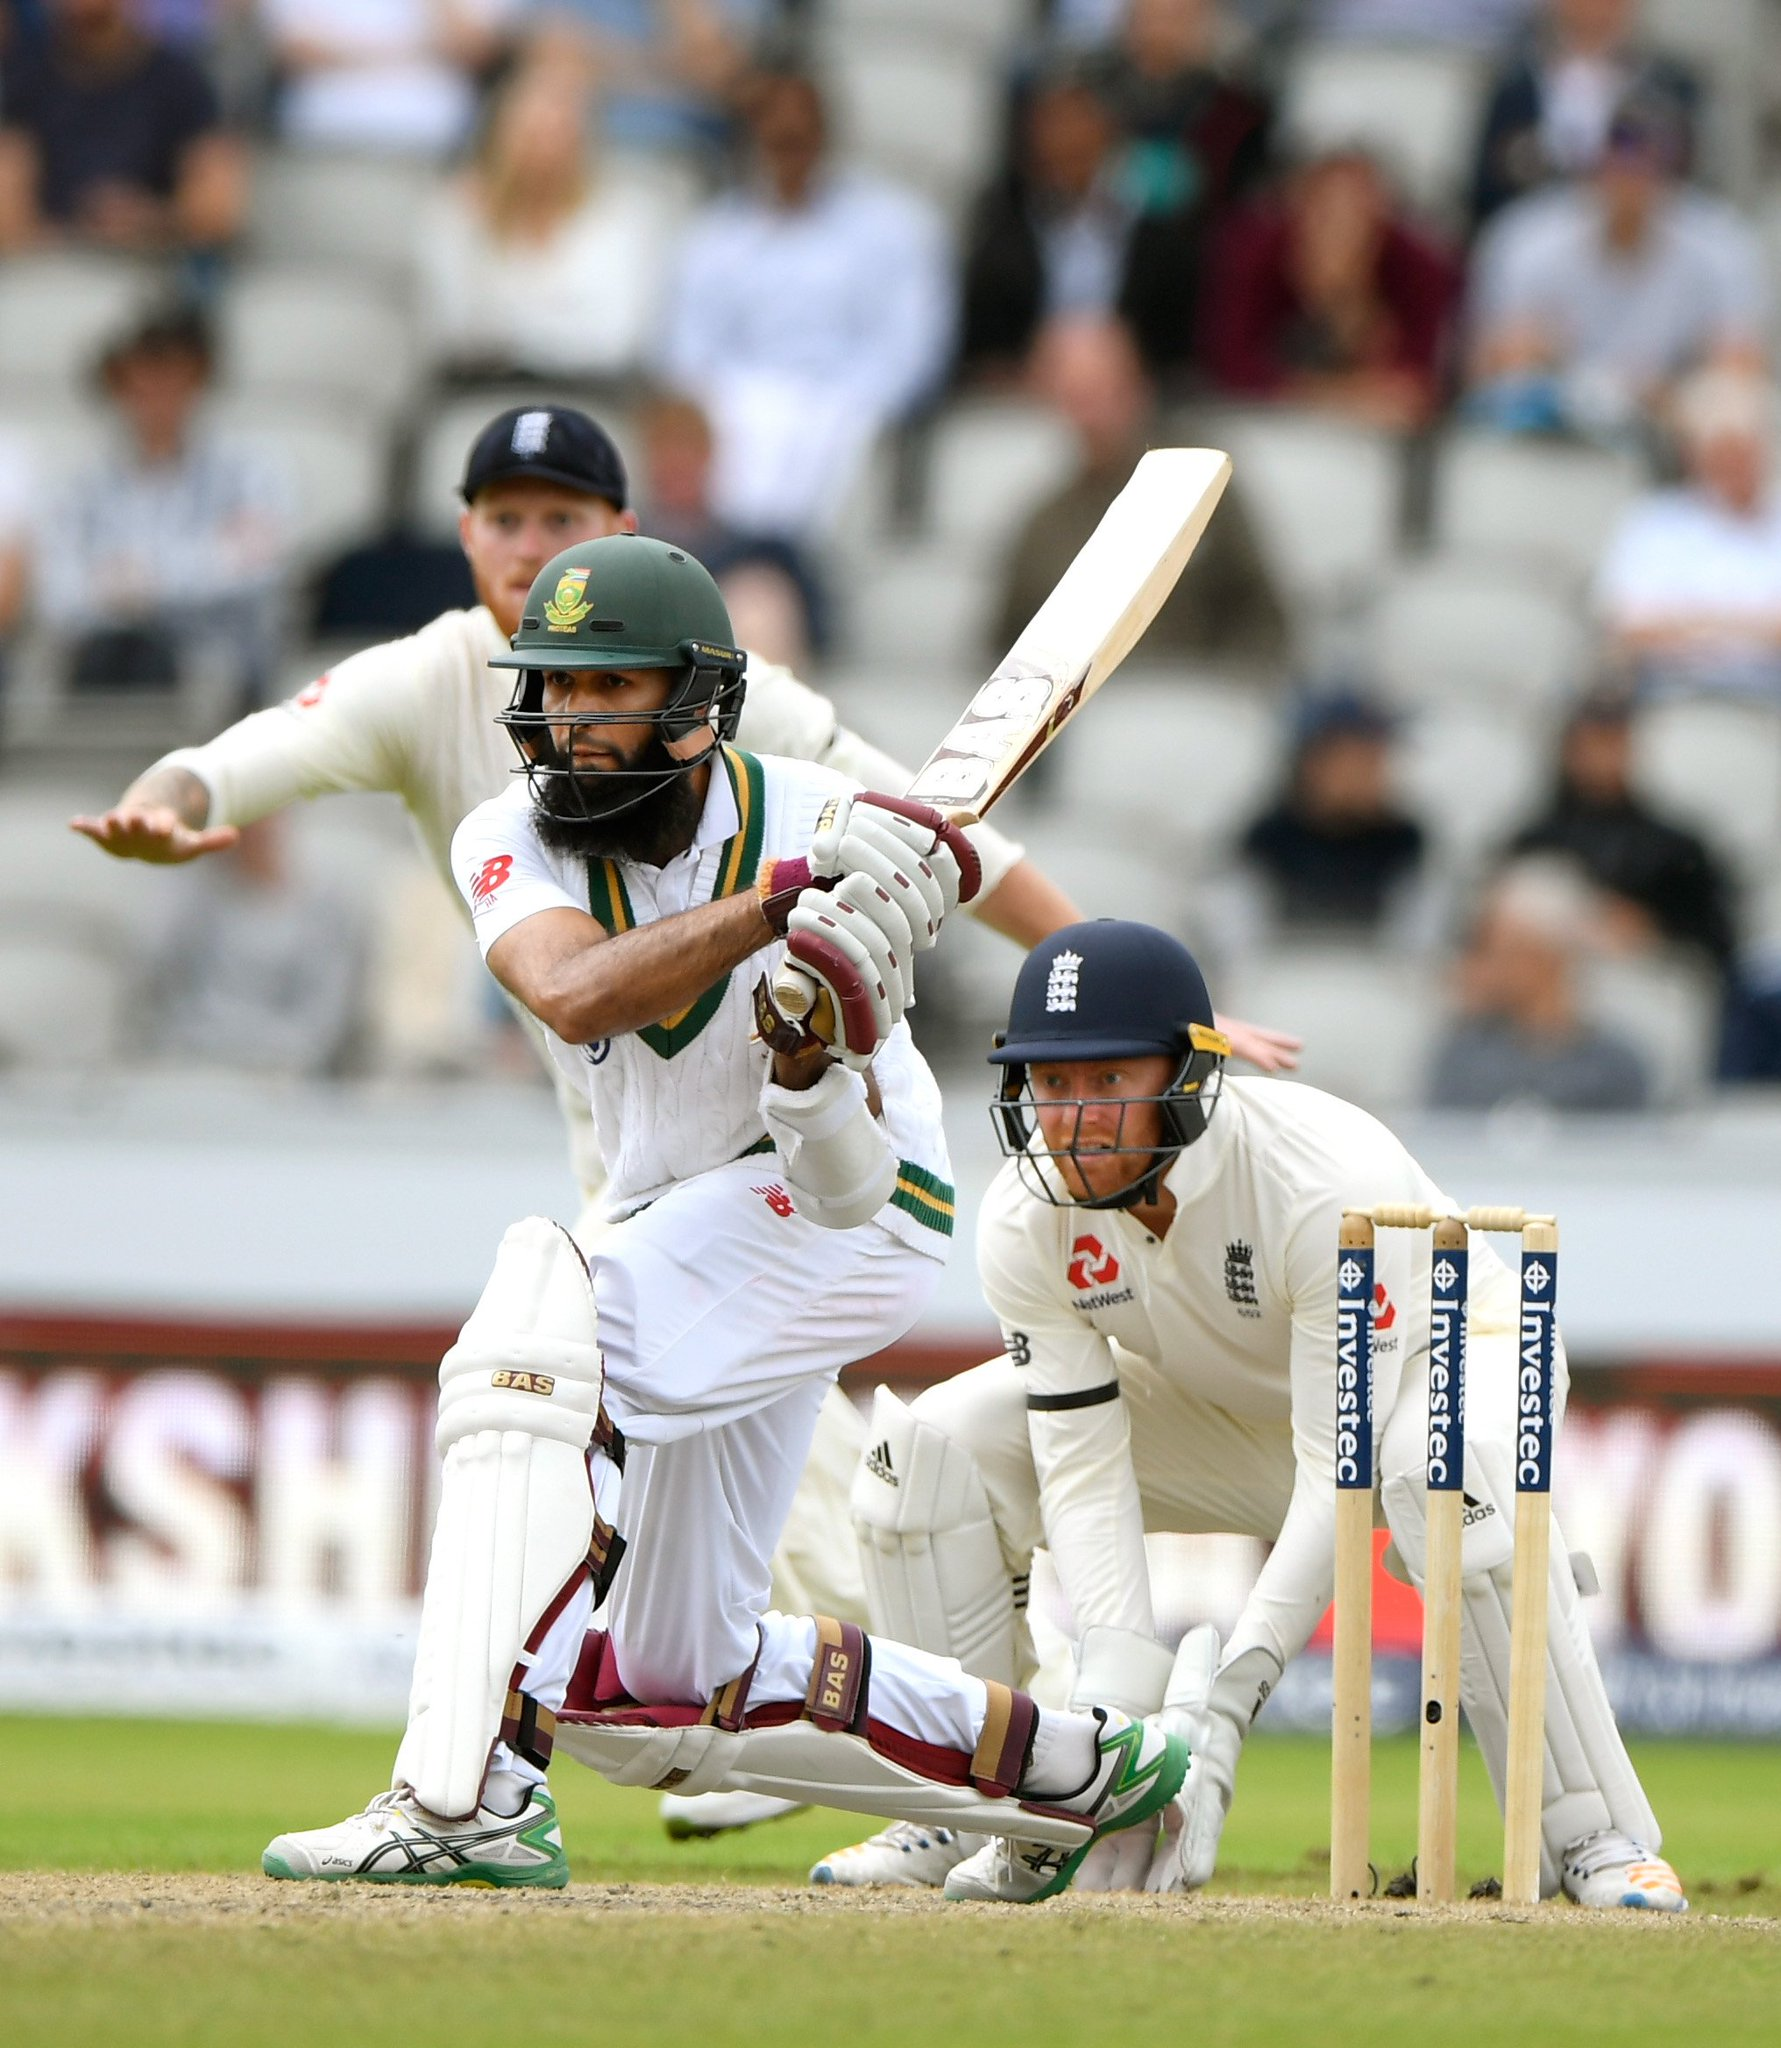 35th Test fifty for Hashim Amla in testing conditions. South Africa: 102/3.  #ENGvSA https://t.co/gNo4QdKqhL